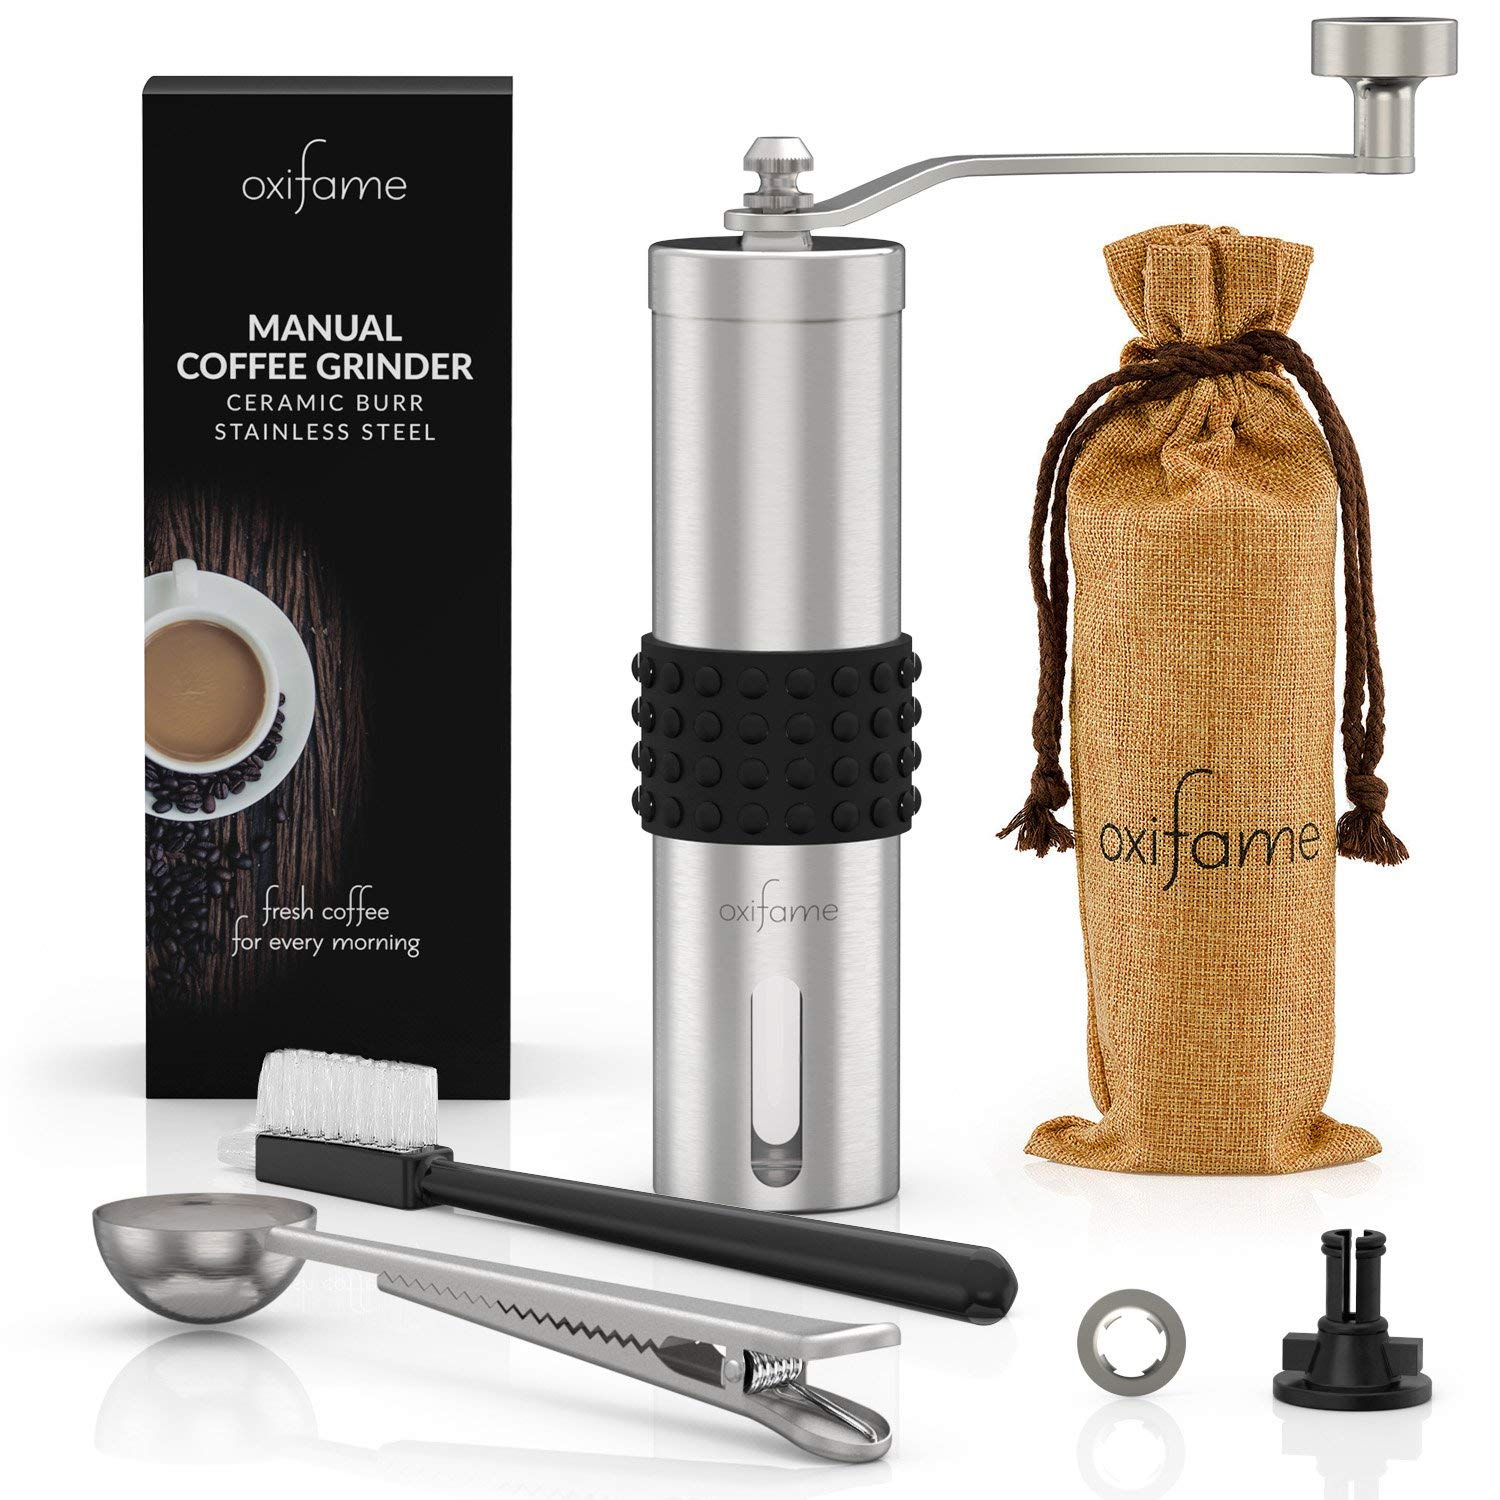 Oxifame Hand Coffee Grinder with Ceramic Conical-Burr – Stainless Steel Manual Crank for Coffee on the Go